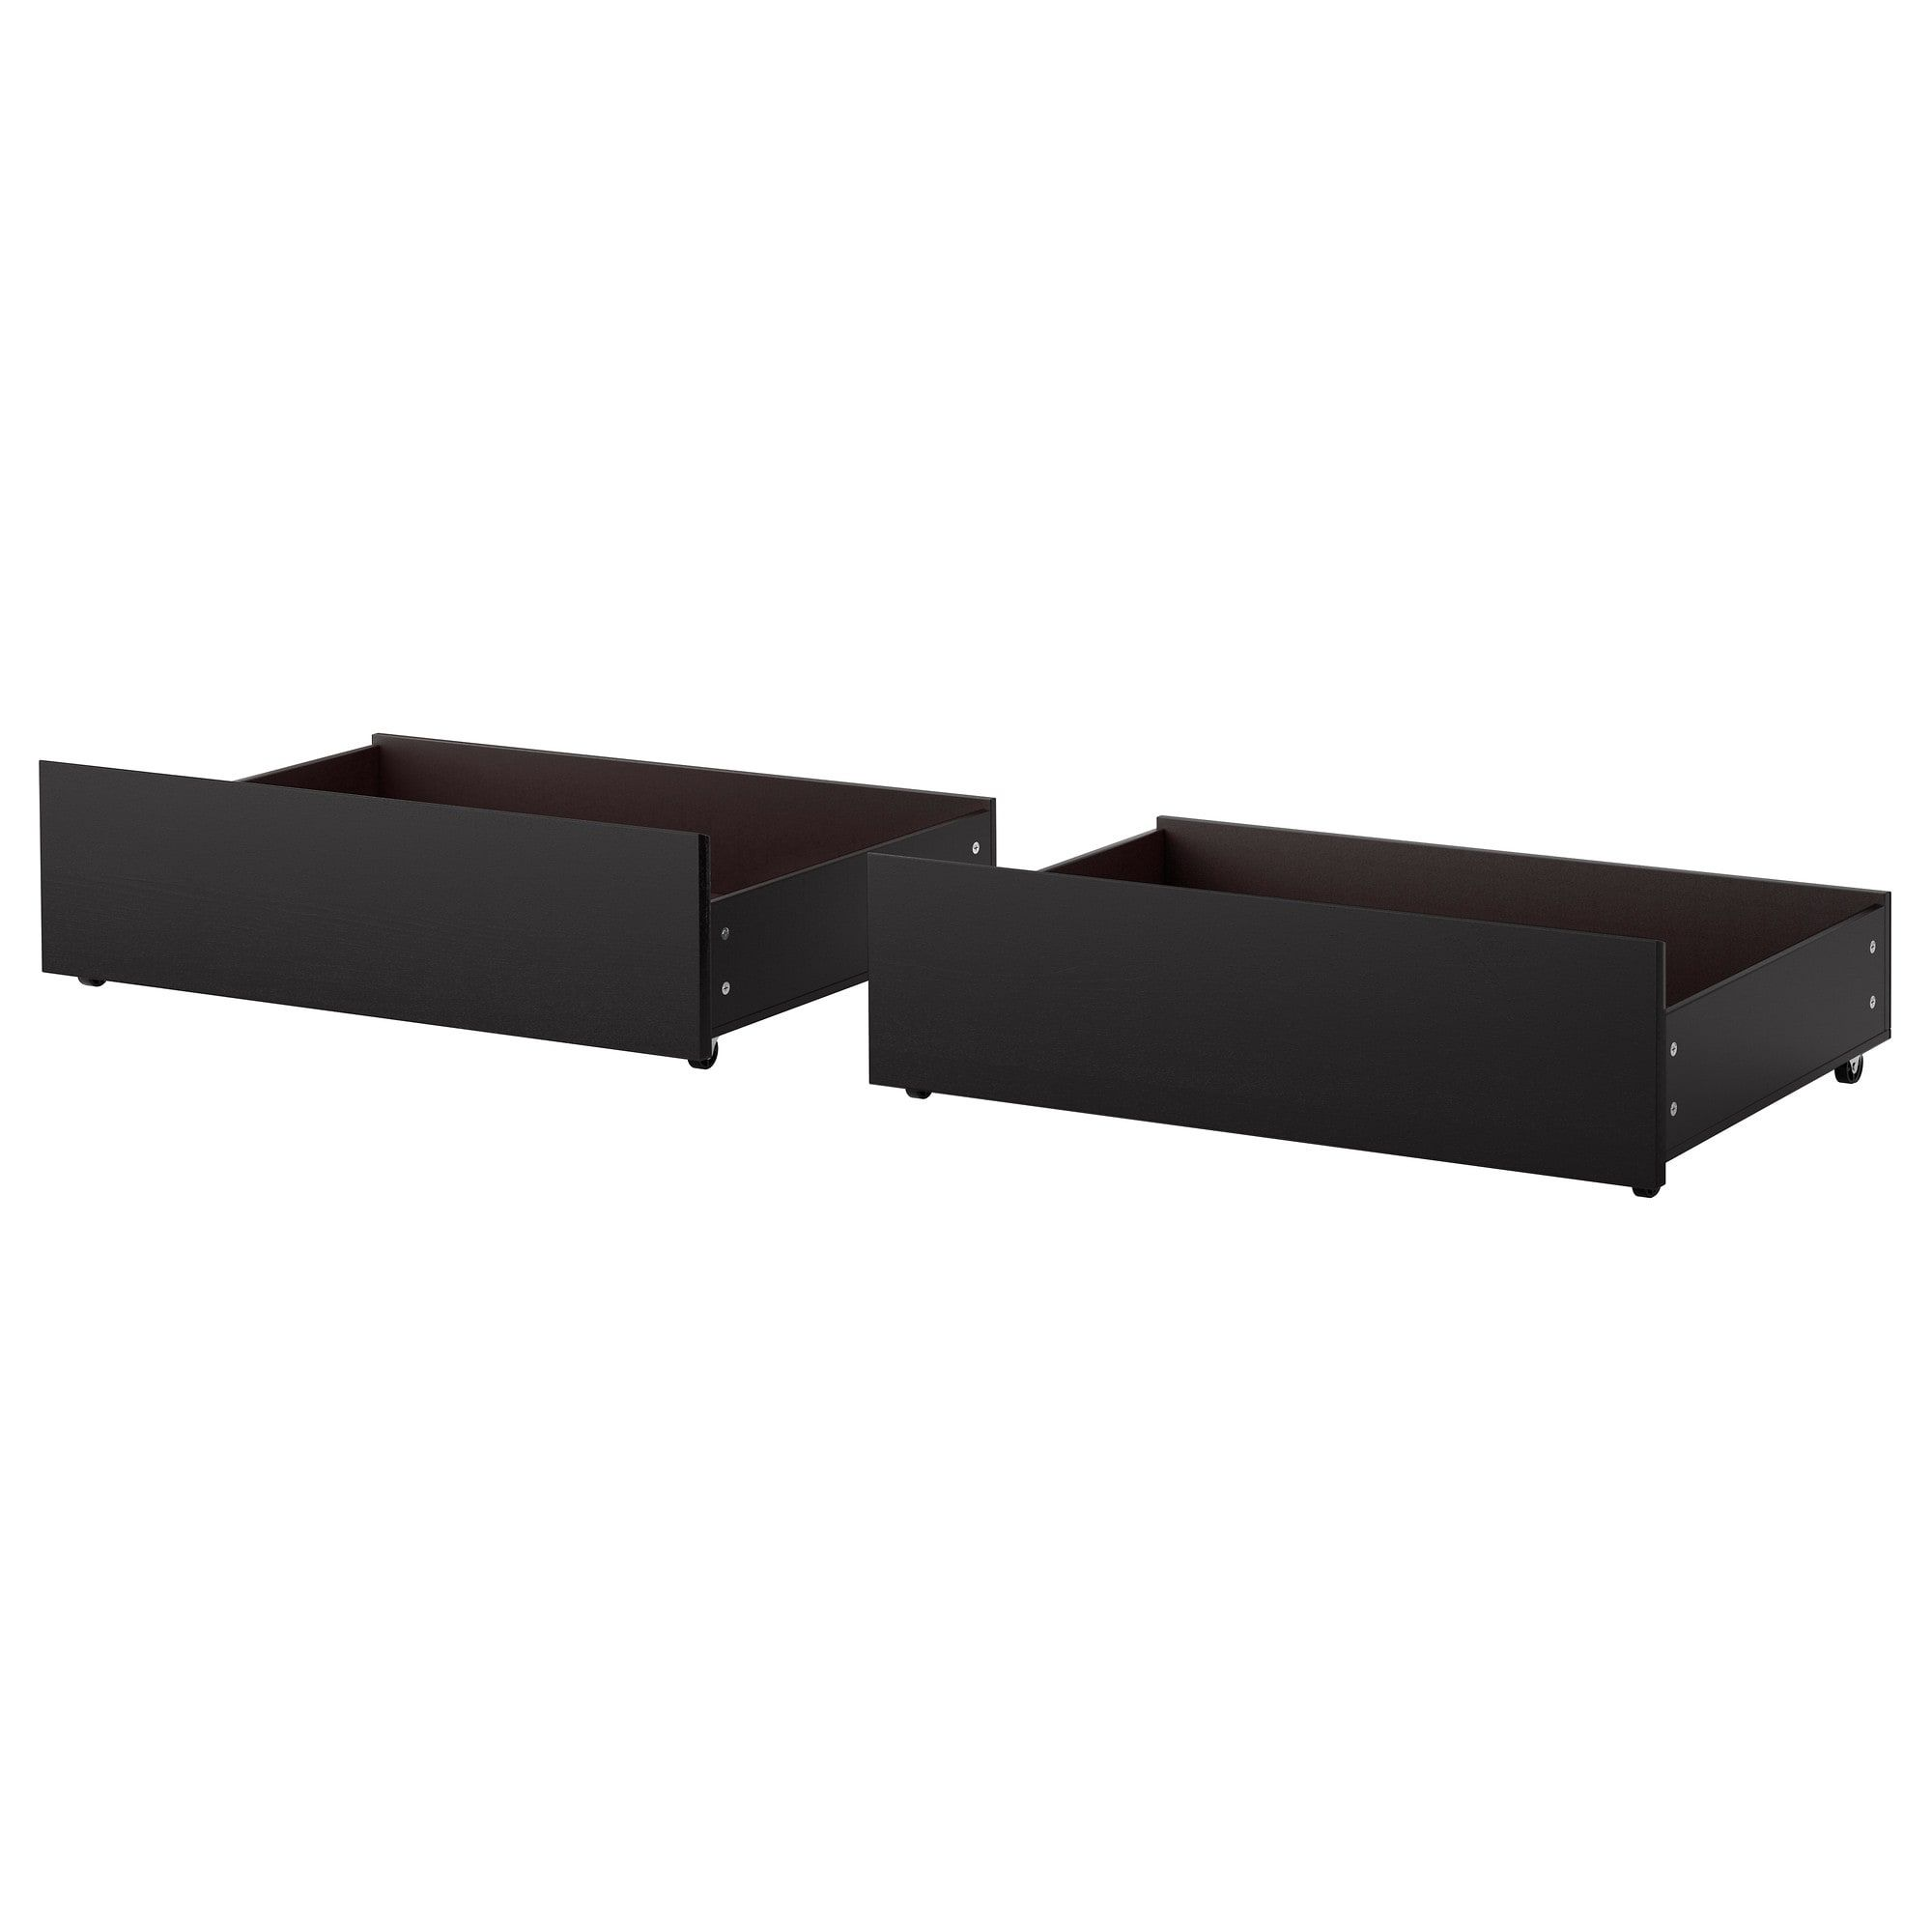 MALM Underbed storage box for high bed